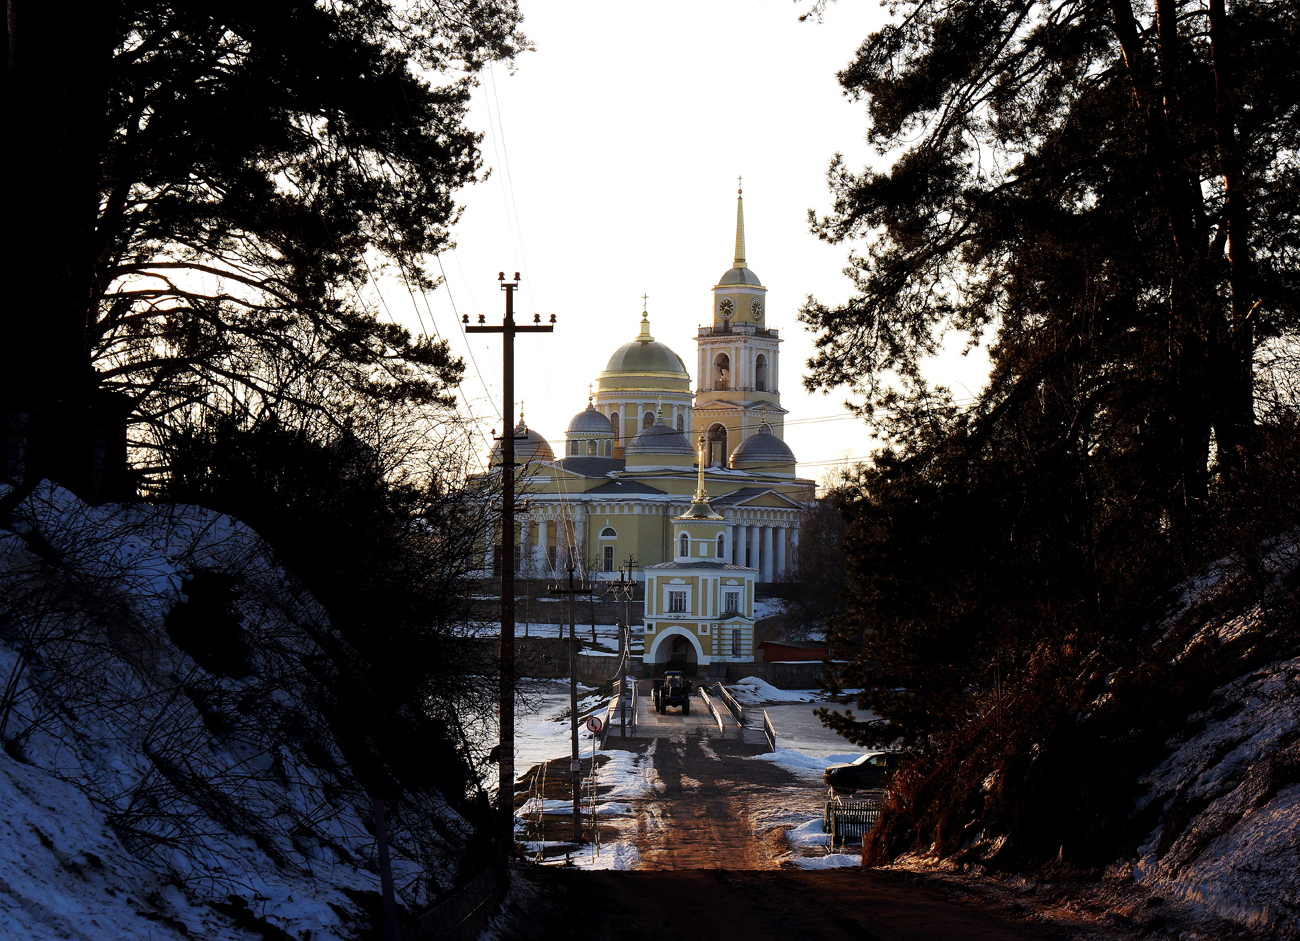 The Nilo-Stolobenskaya Hermitage Russian Orthodox monastery on Lake Seliger